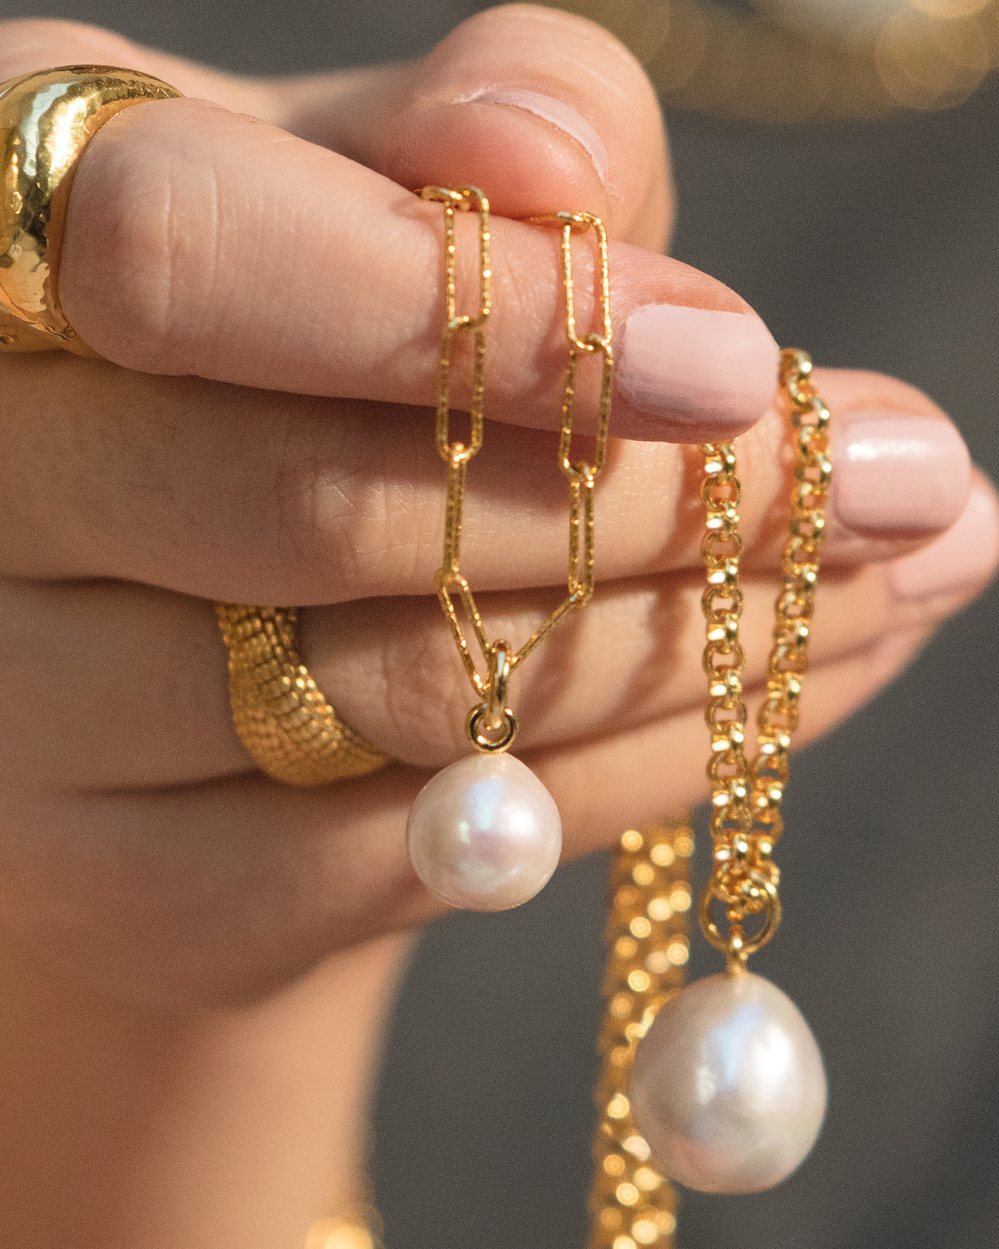 Close up of a model's hand holding a few Nura Baroque Pearls, styled on a variety of gold chains.